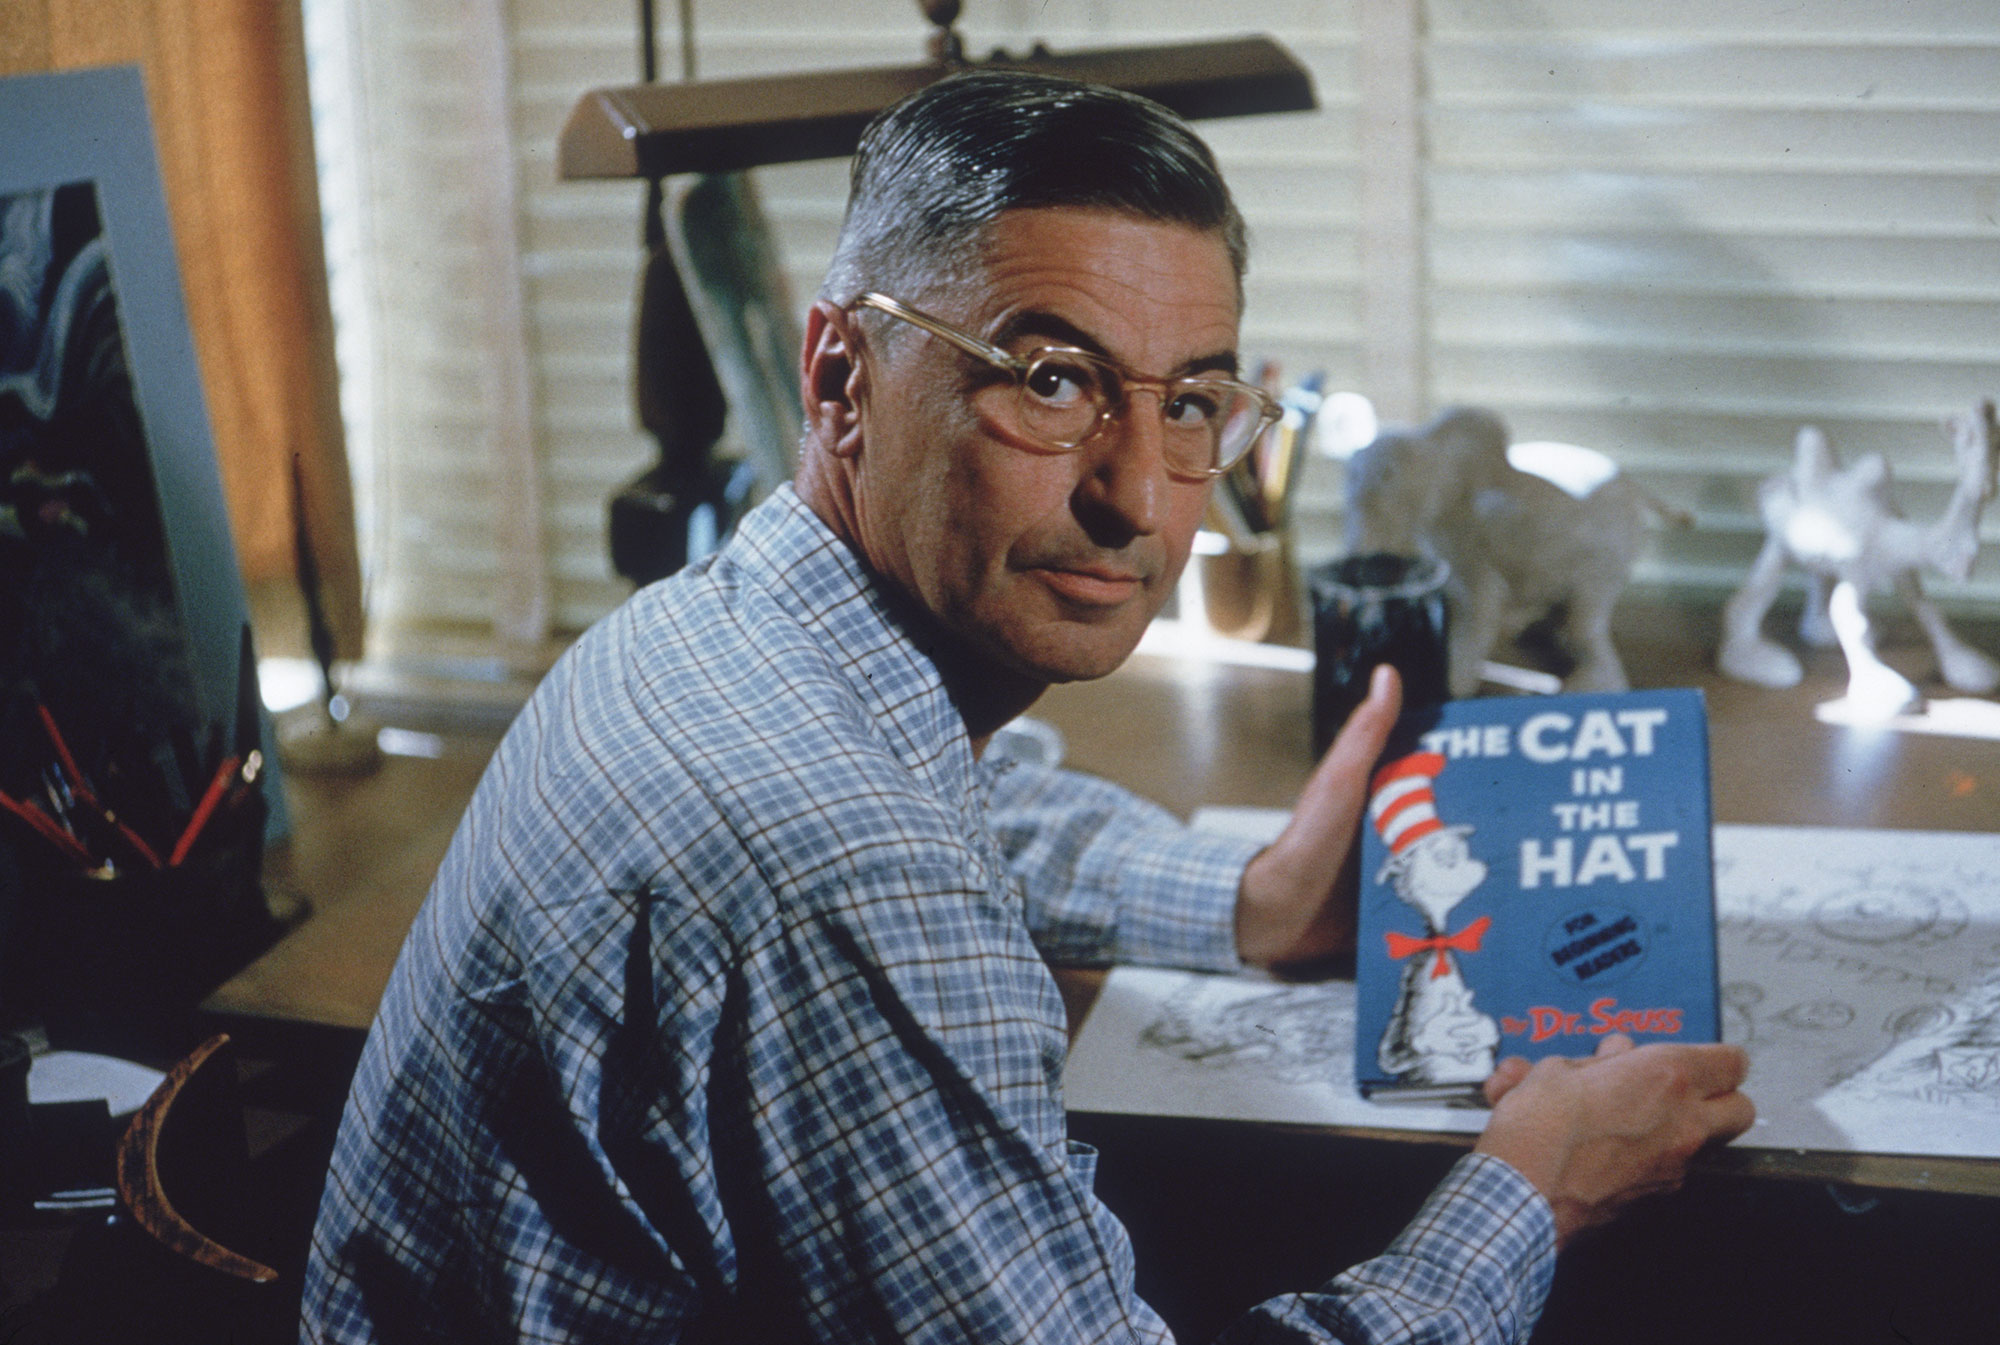 Dr Seuss Author Holding Cat In The Hat Book